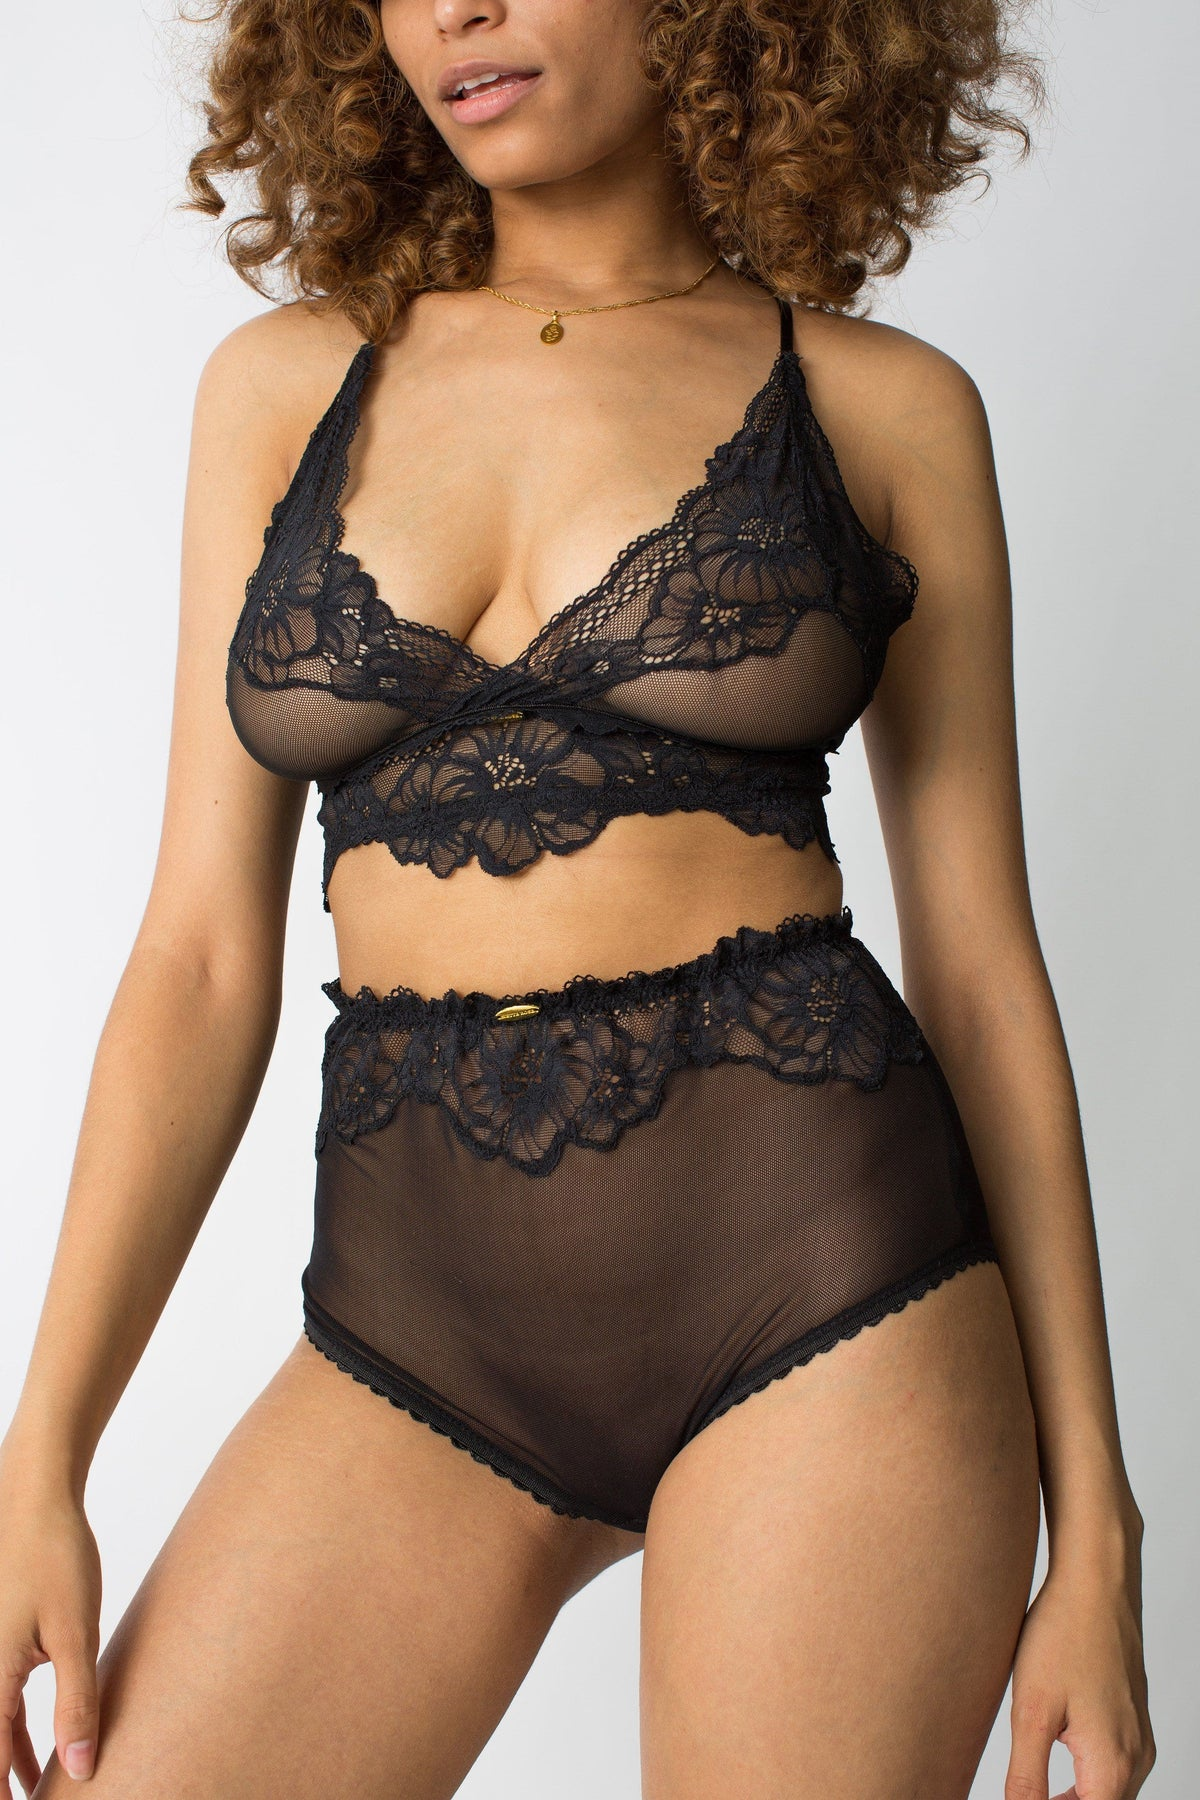 womanhood lingerie - black lace underwear - sexy lingerie - nette rose